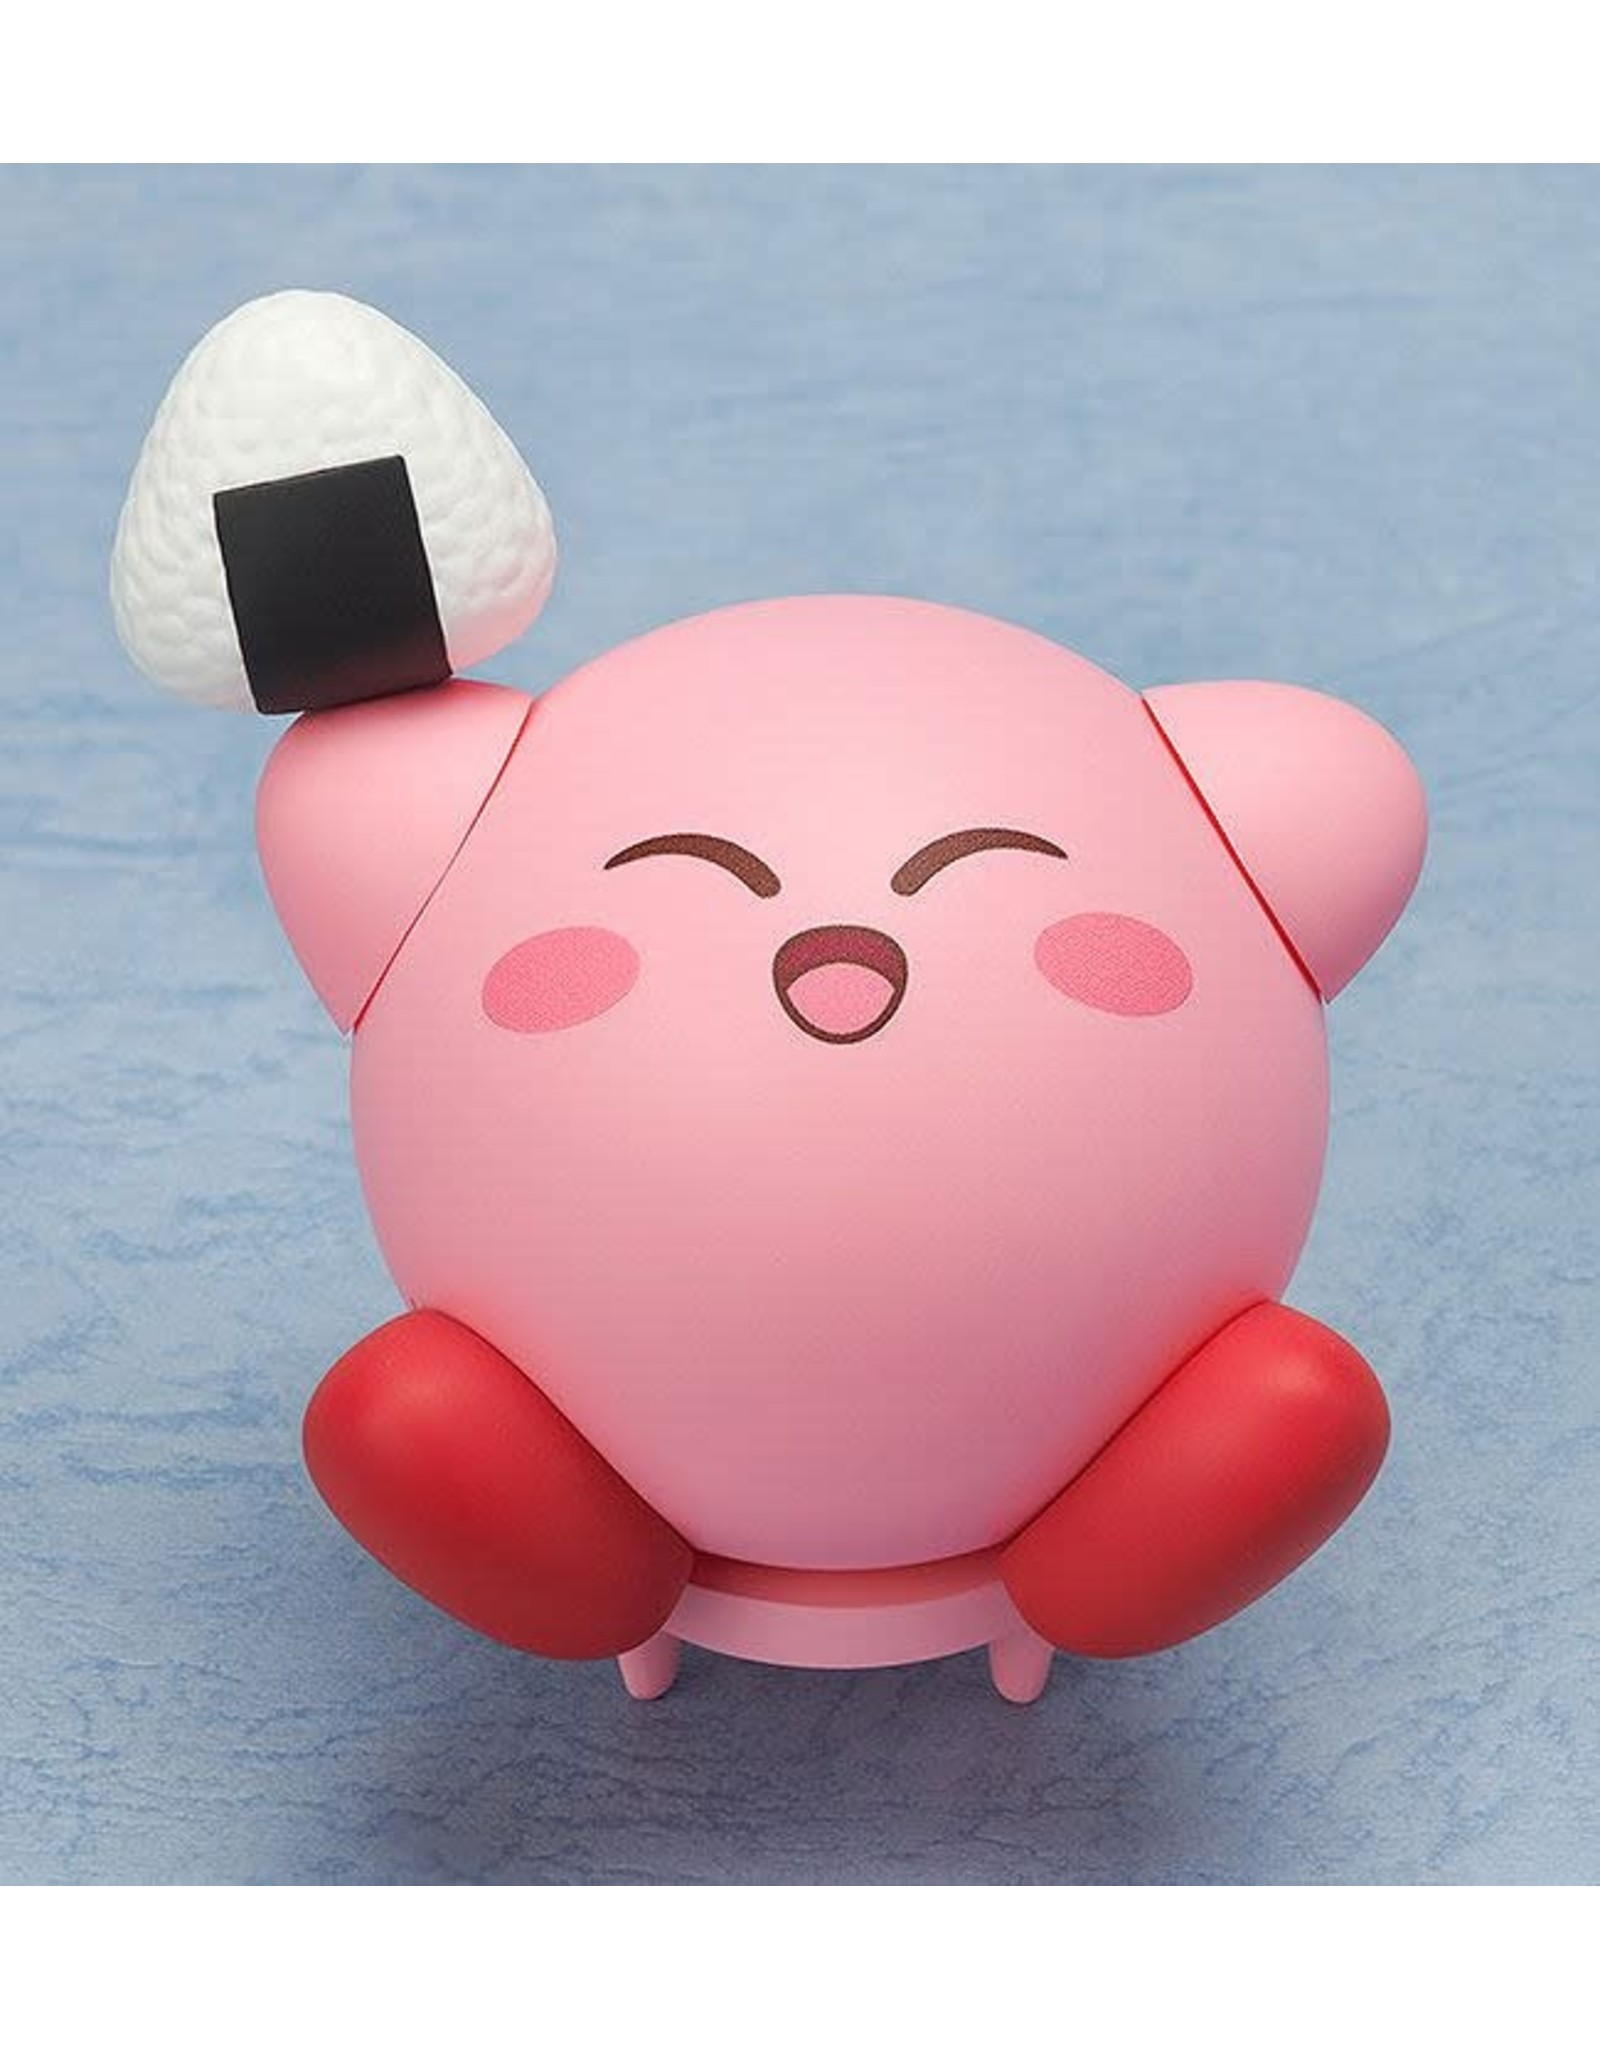 Kirby - Corocoroid Buildable Collectible Figures Series 1 - Mystery Box - 6 cm